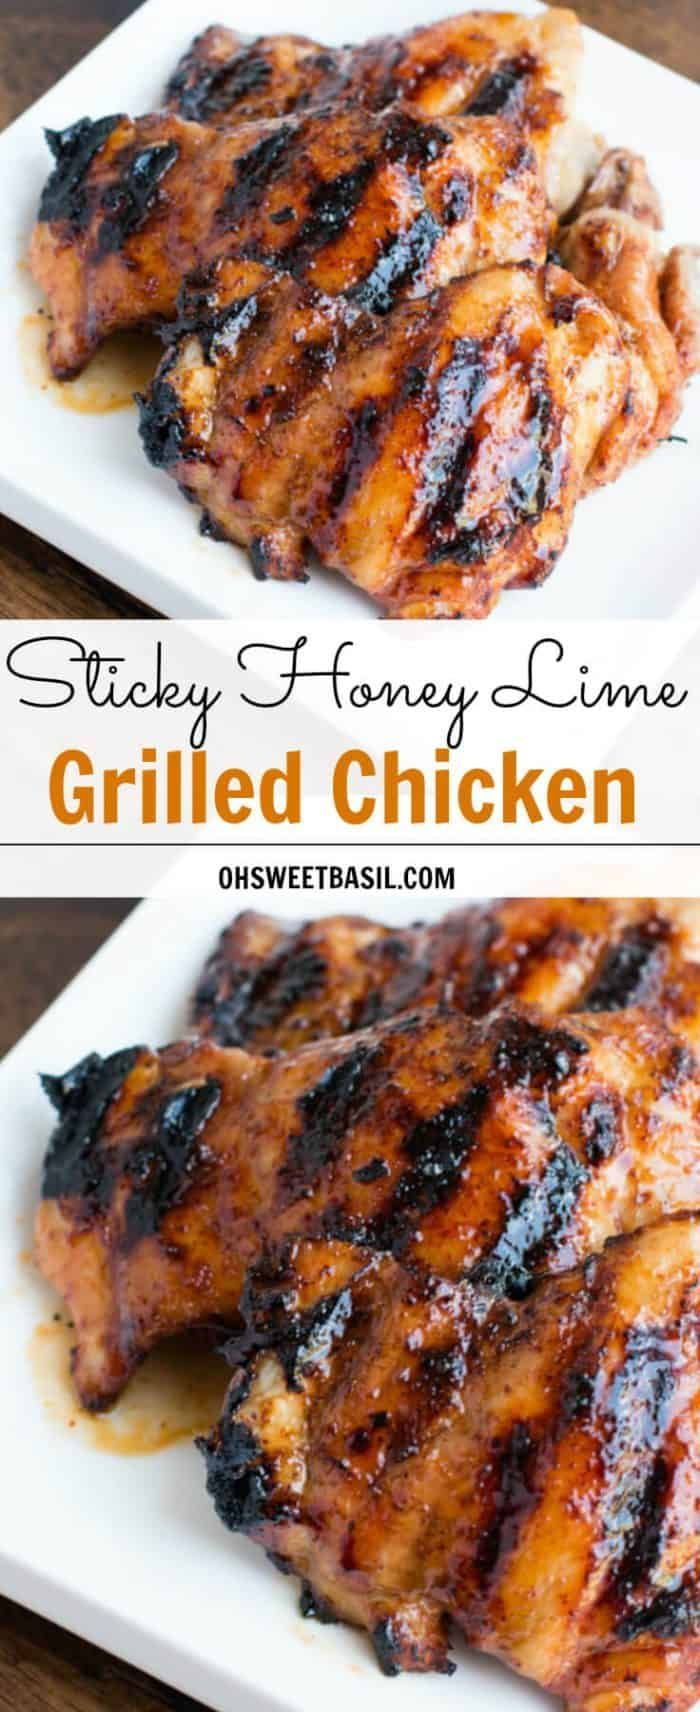 Sticky Honey Lime Grilled Chicken [+ Video] - Oh Sweet Basil